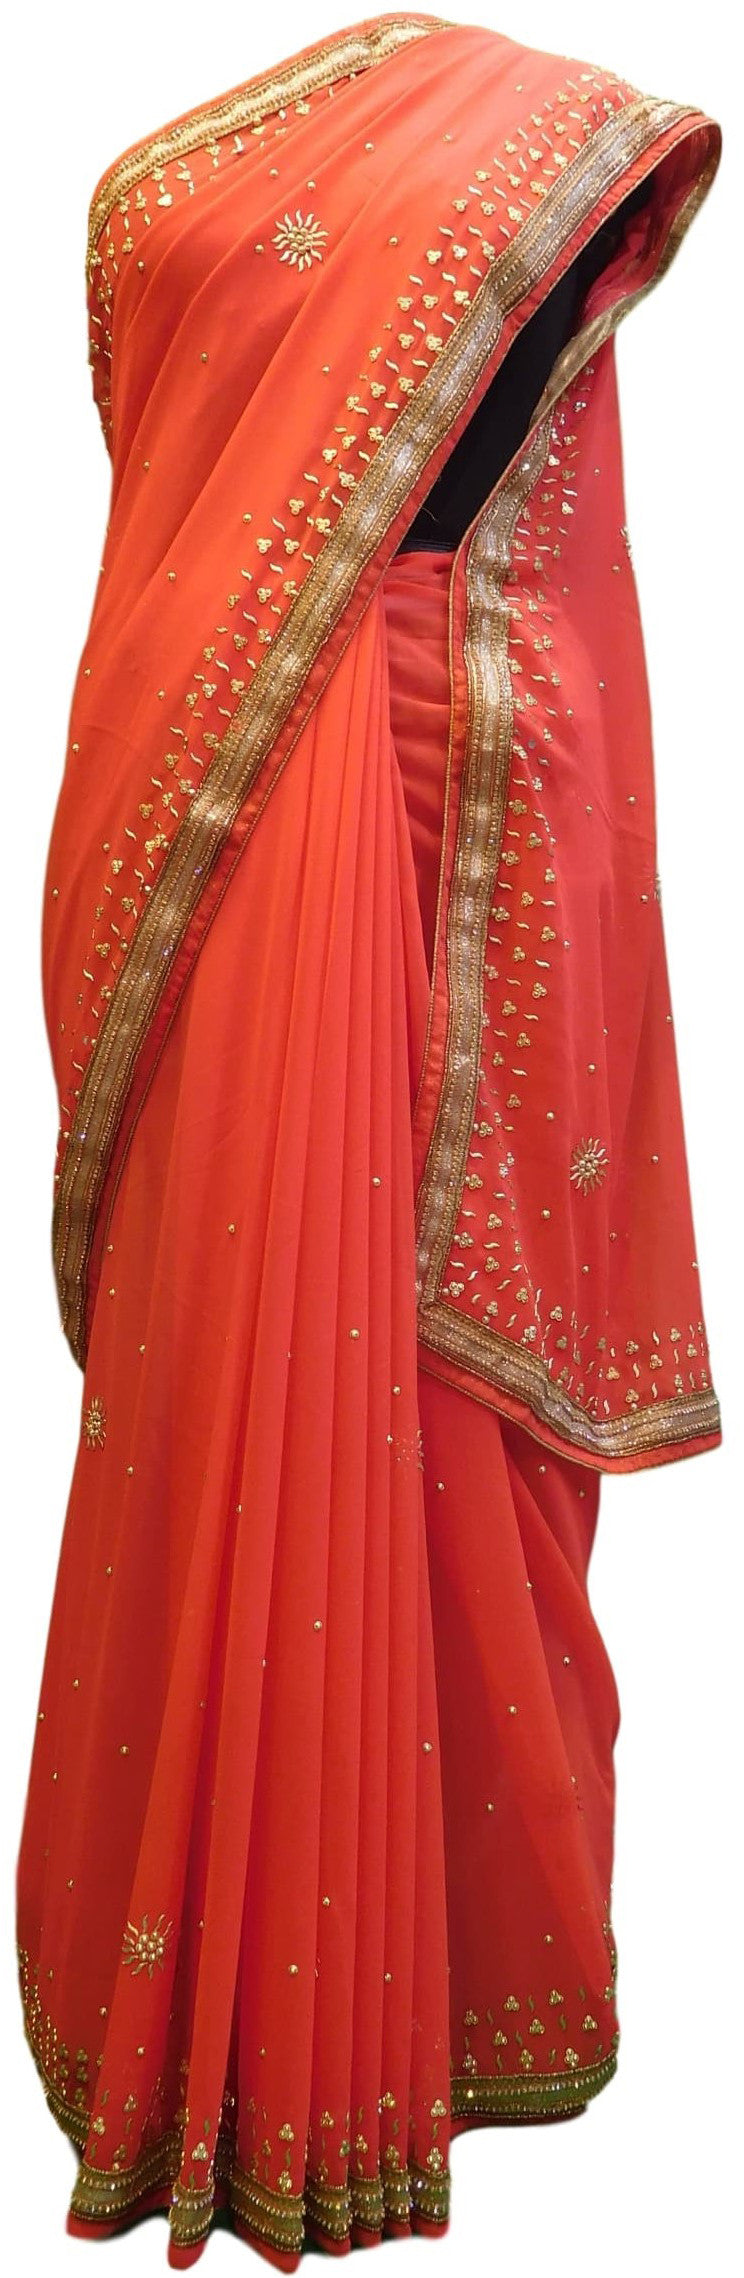 Gajari Designer Gerogette (Synthetic) Hand Embroidery Stone Border Sari Saree